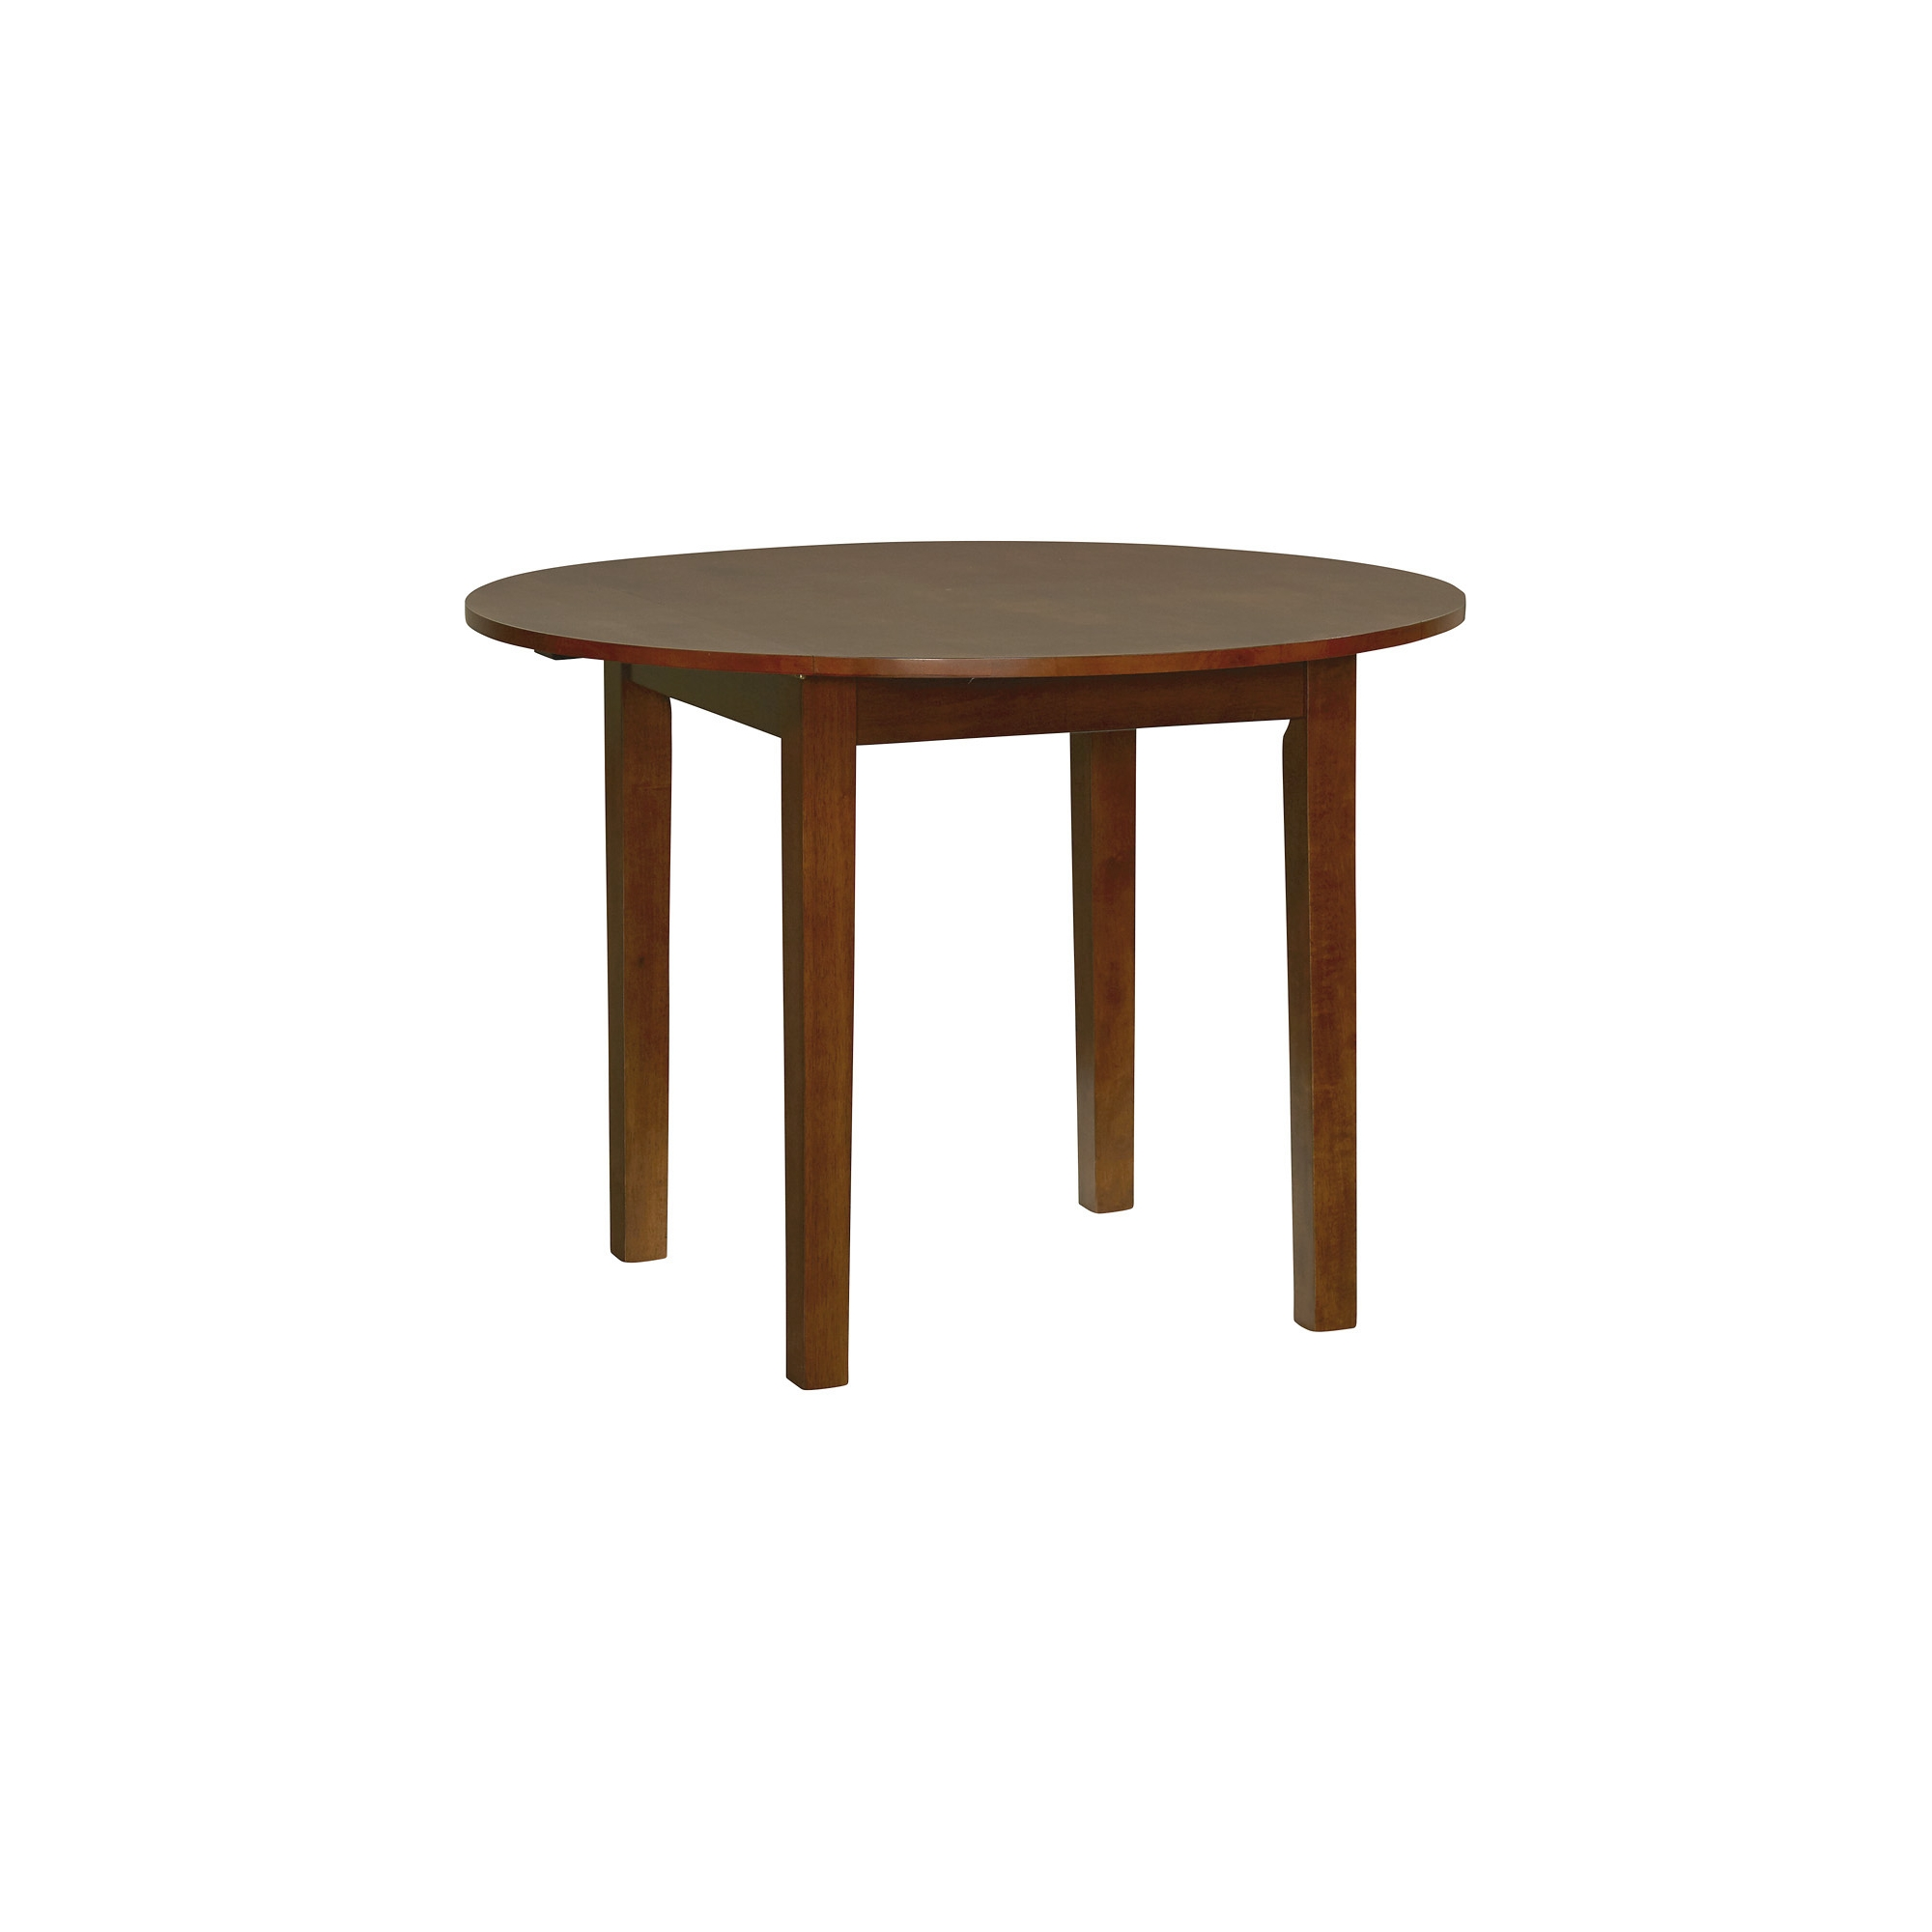 Tables greene s amish furniture part 2 - 1